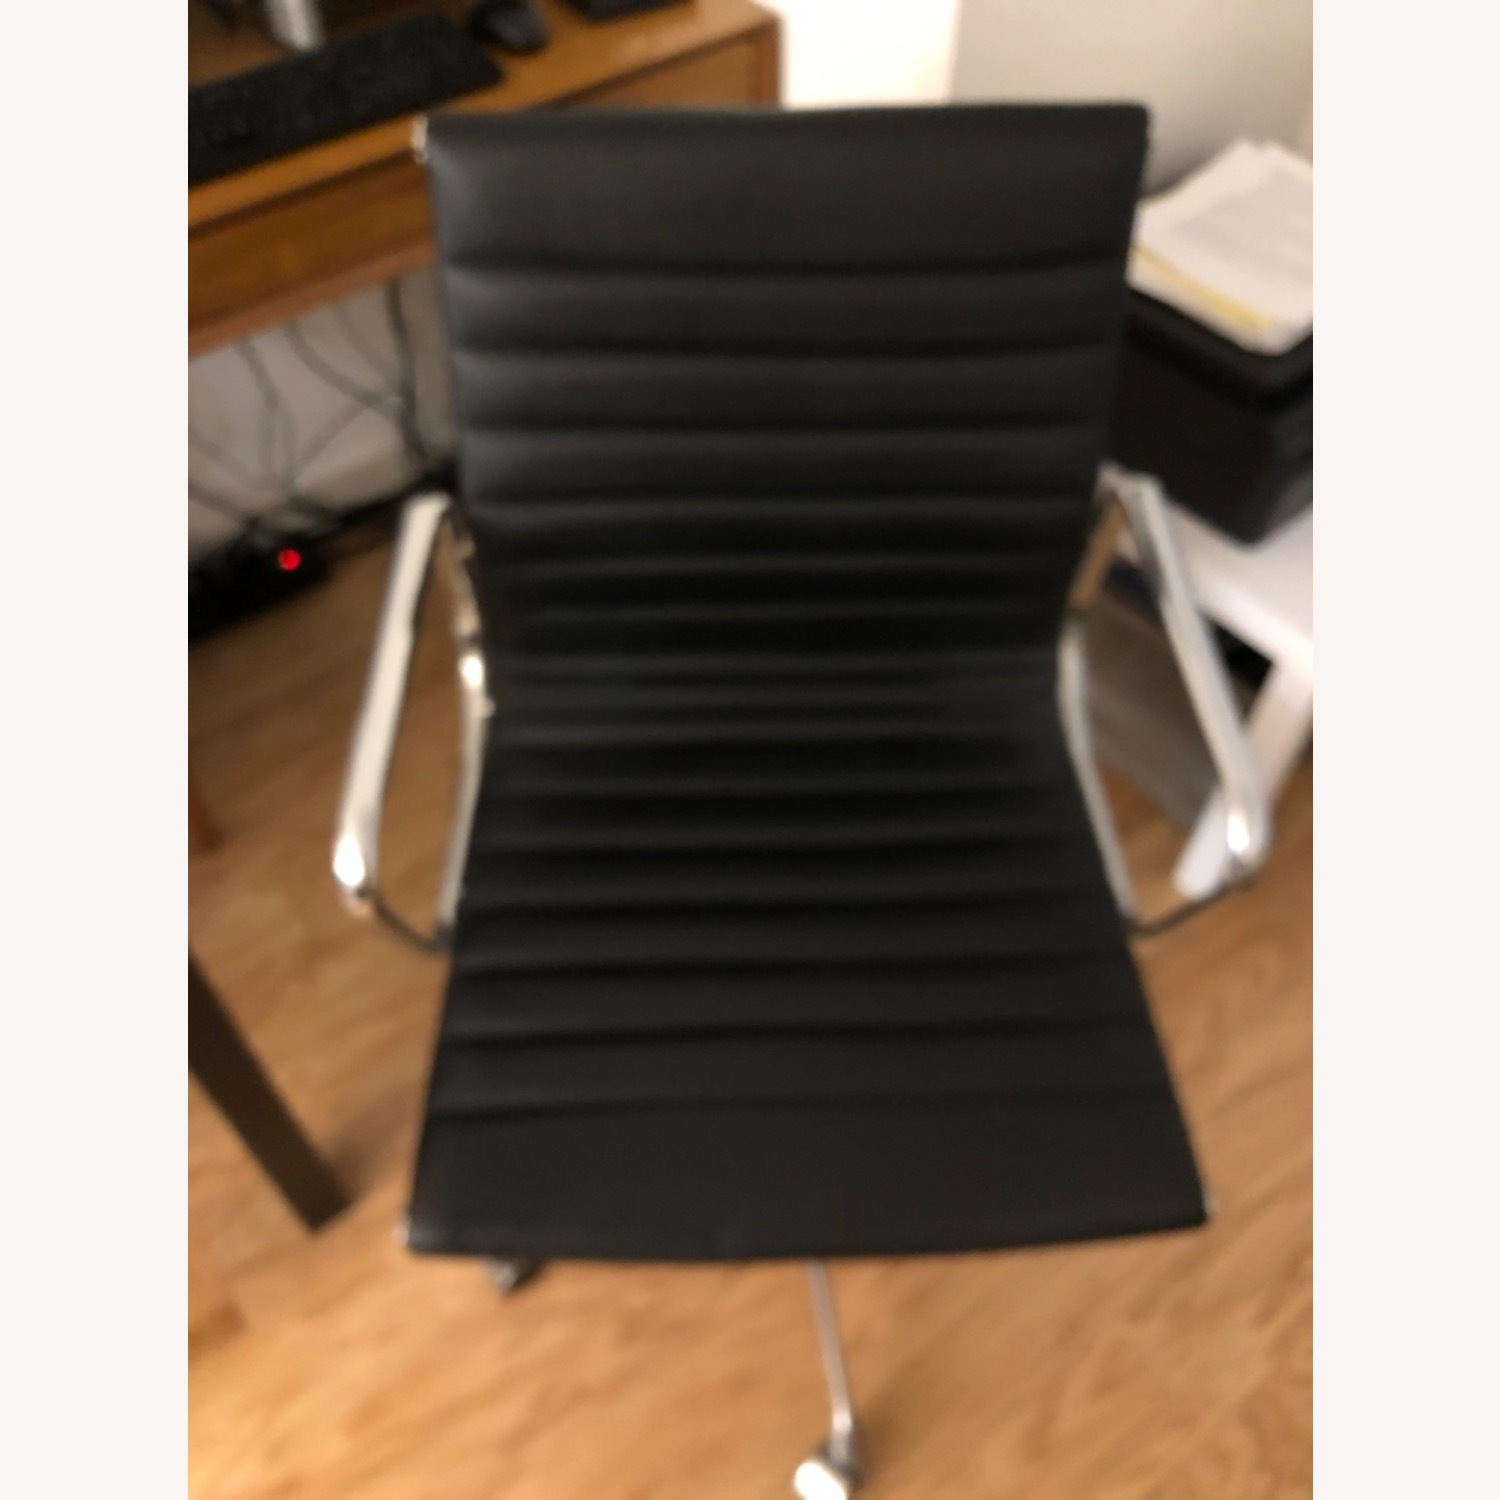 West Elm Black Leather Office Chair - image-1